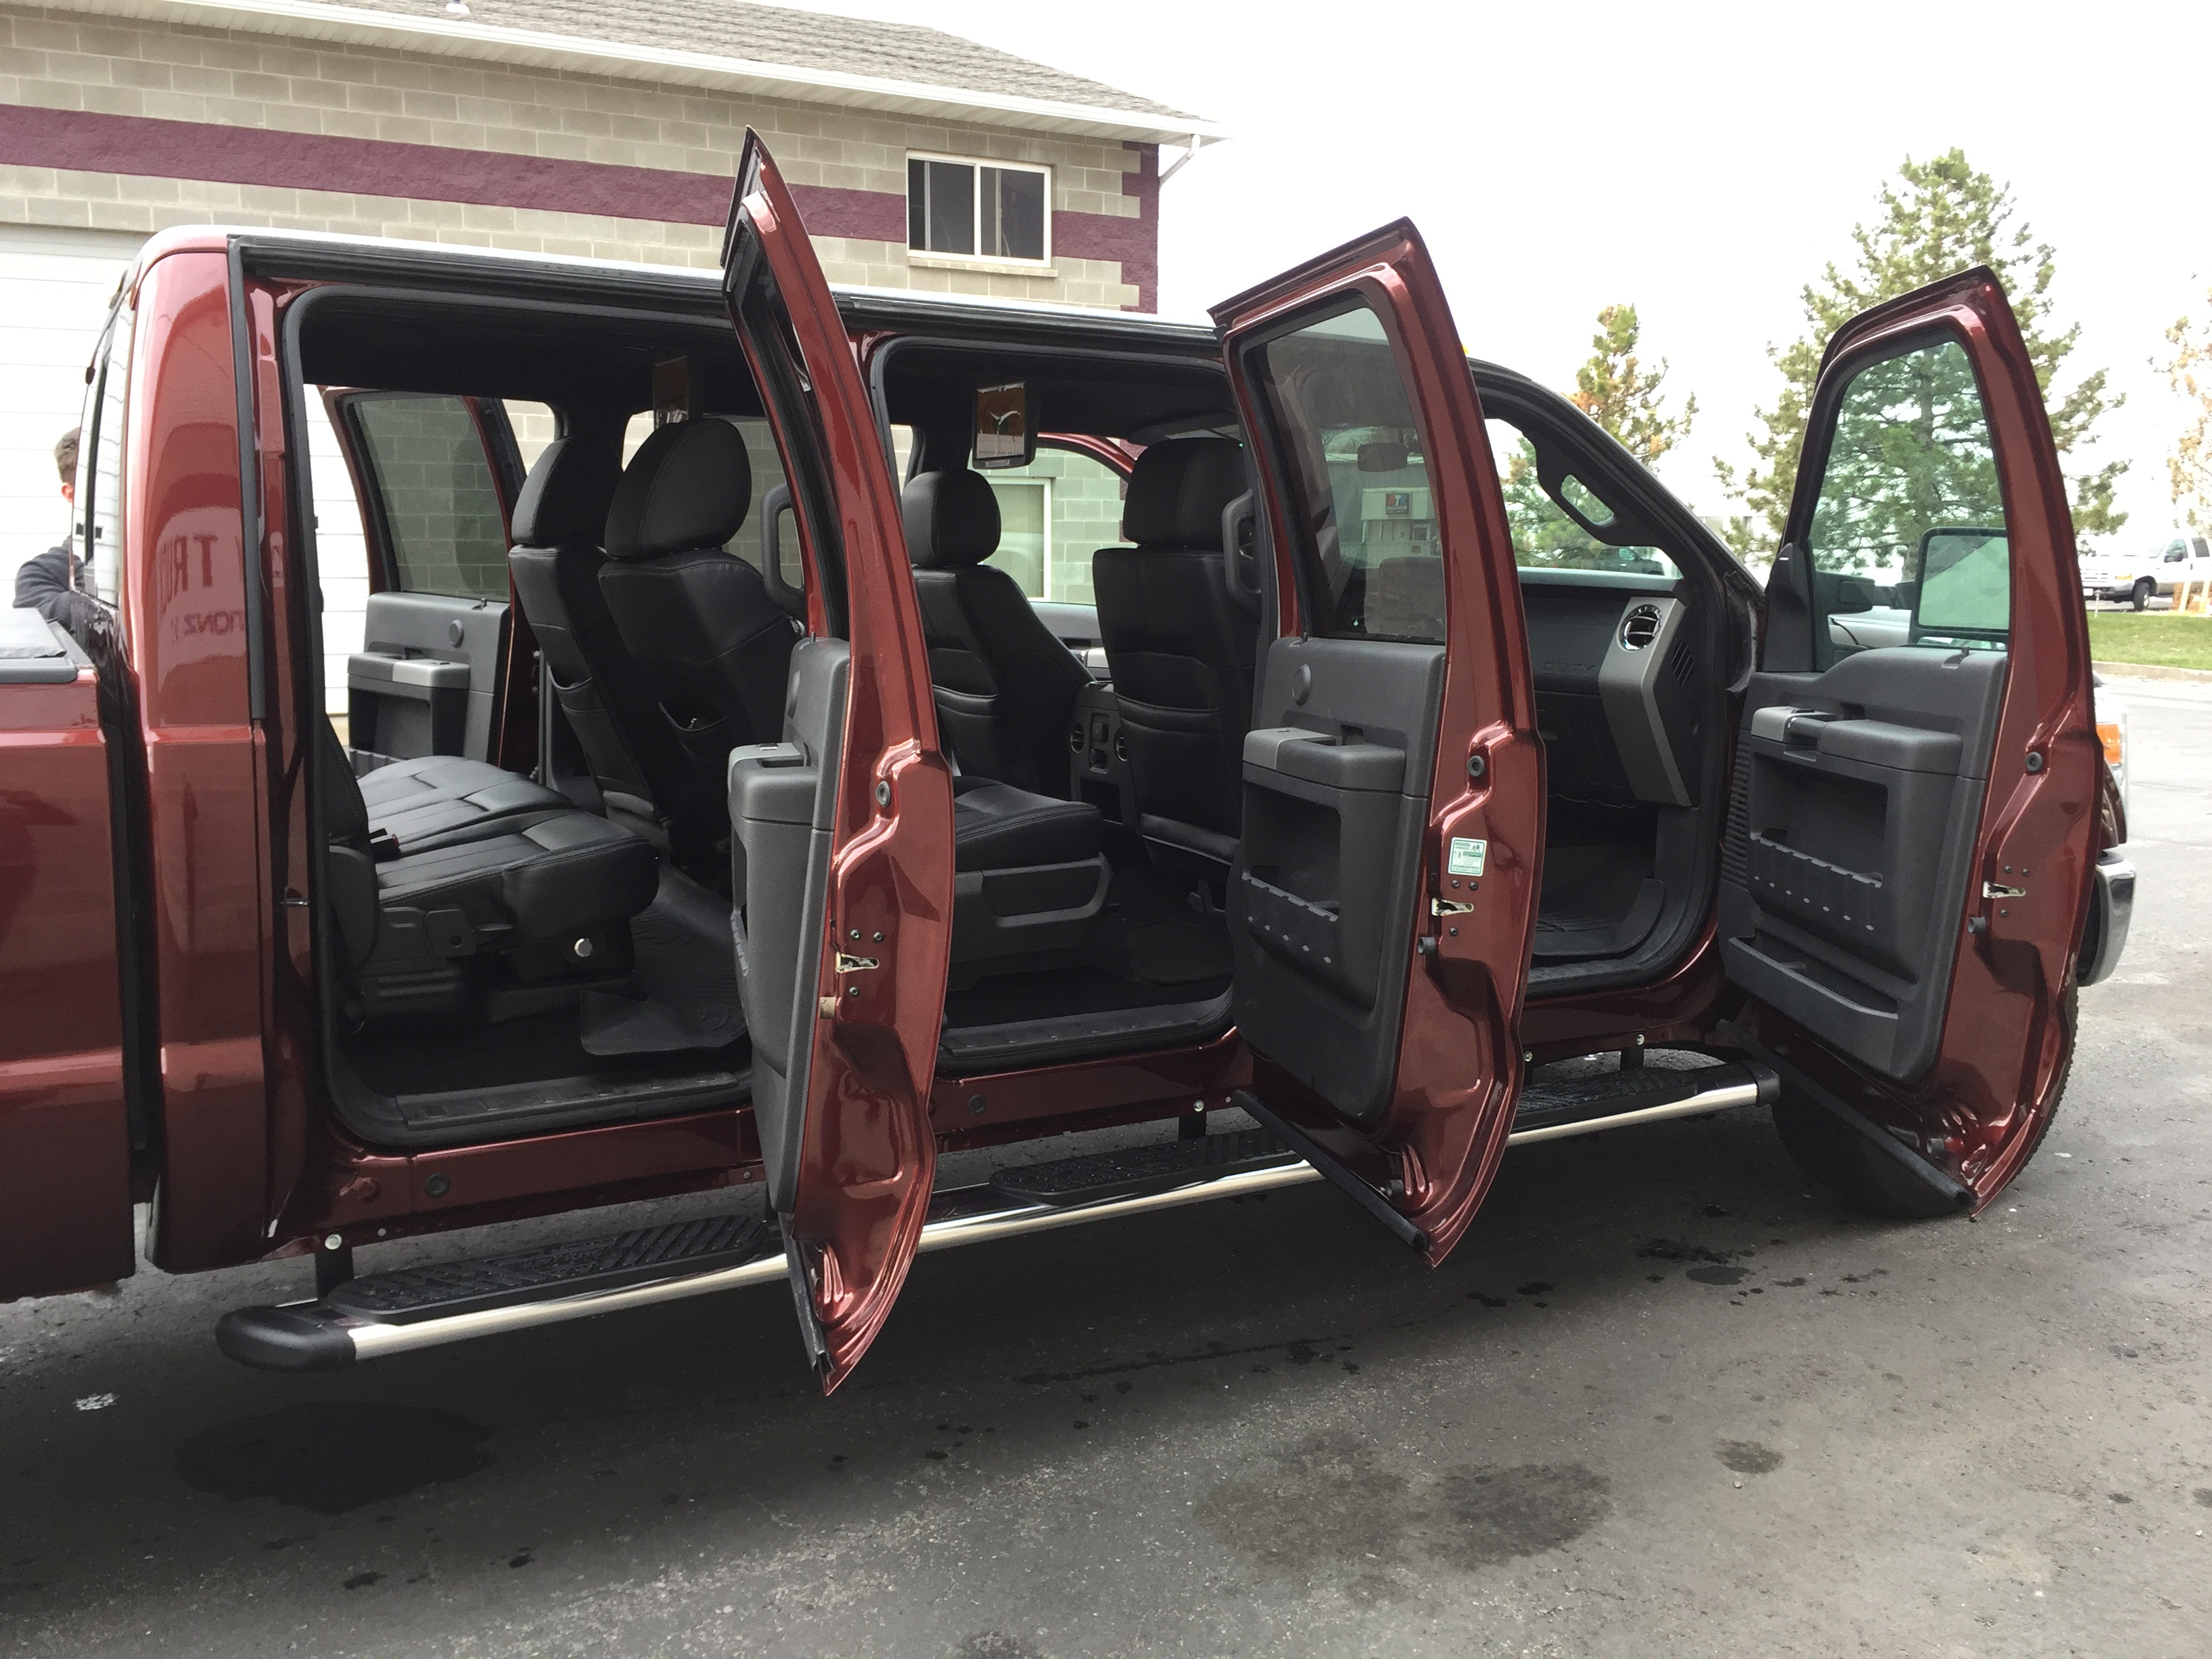 6 Door Truck >> Six Door Conversions Stretch My Truck